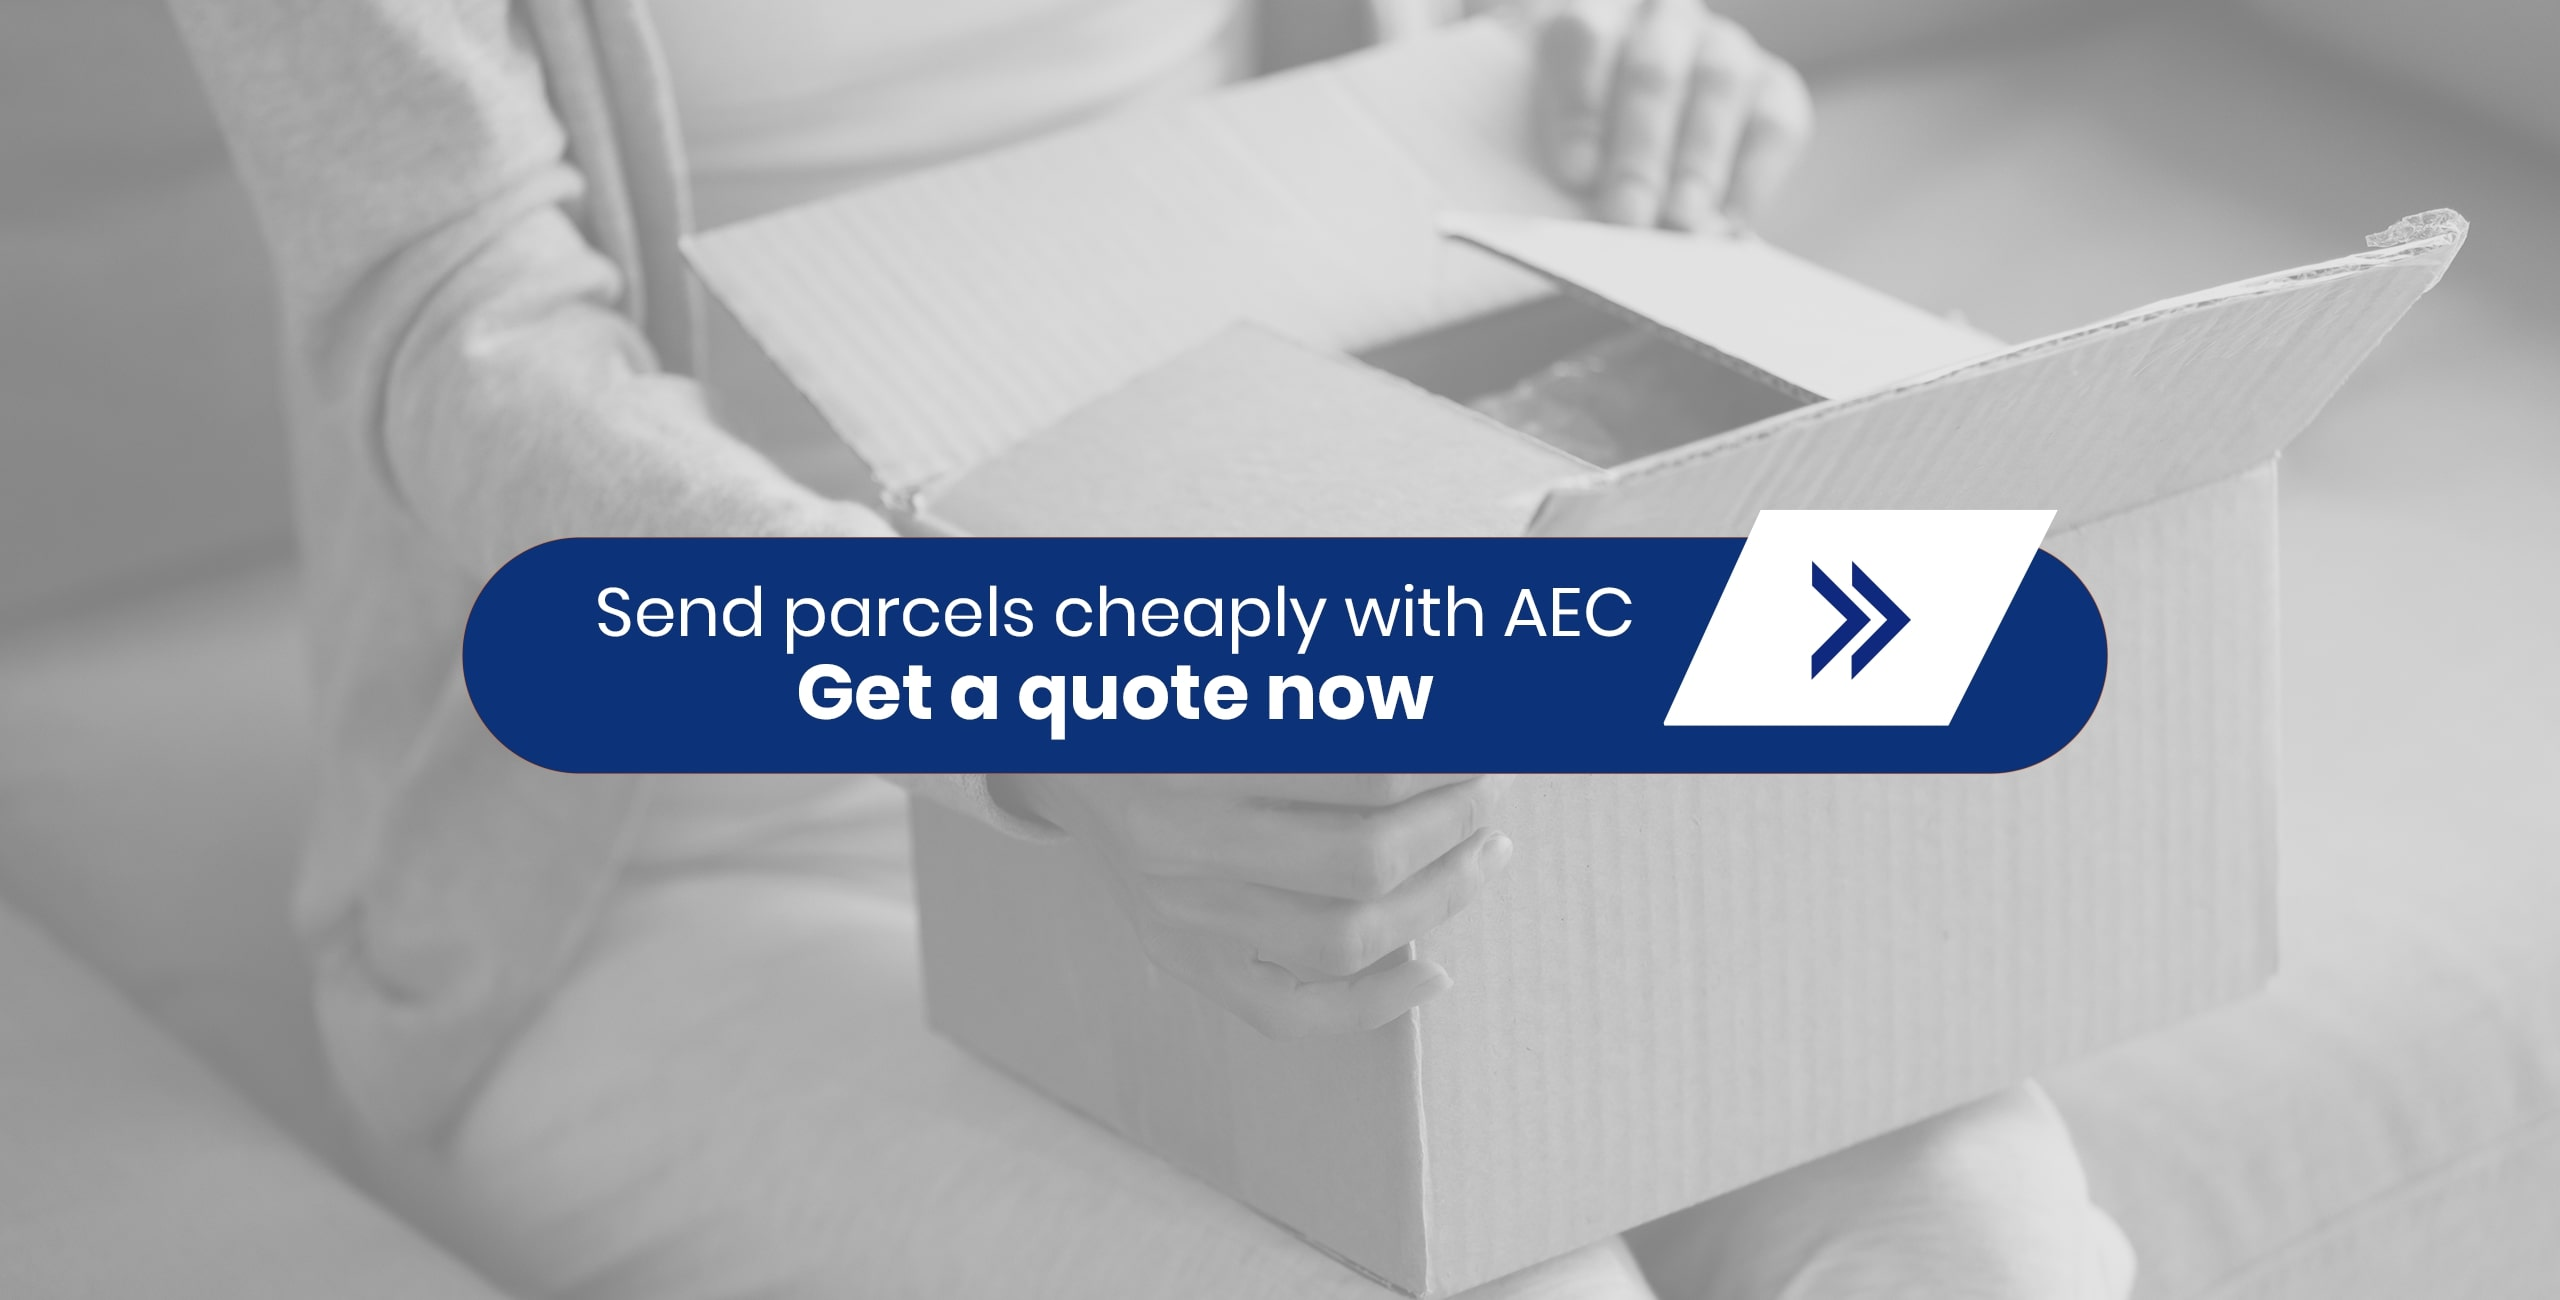 Get shipping price quote